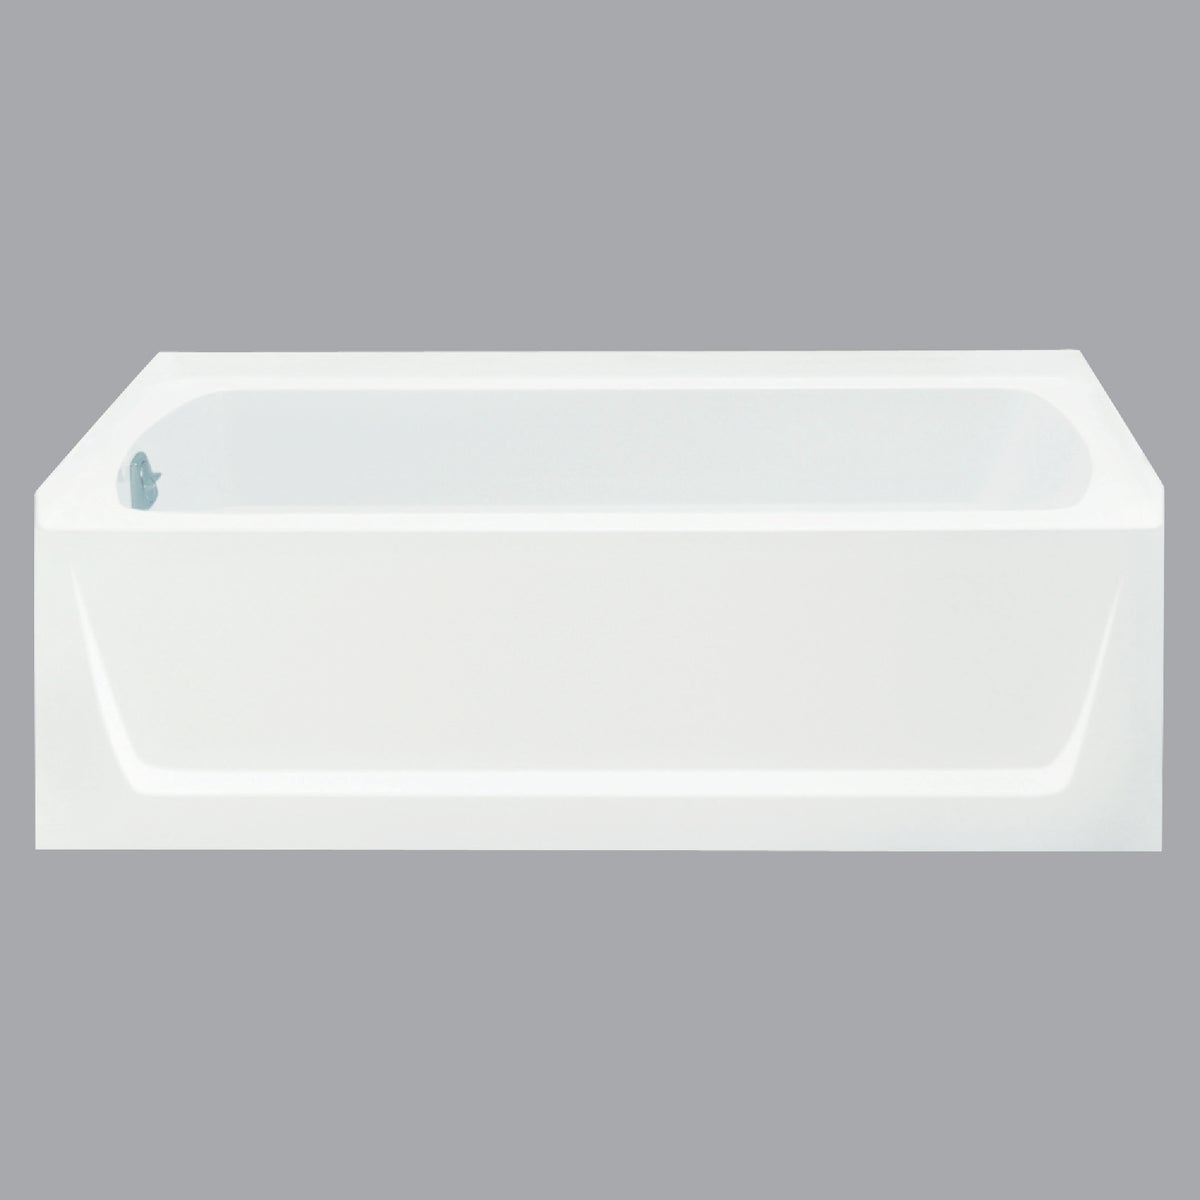 WHITE ENSEMBLE LH TUB - 71121110-0 by Sterling Pbg/vikrell